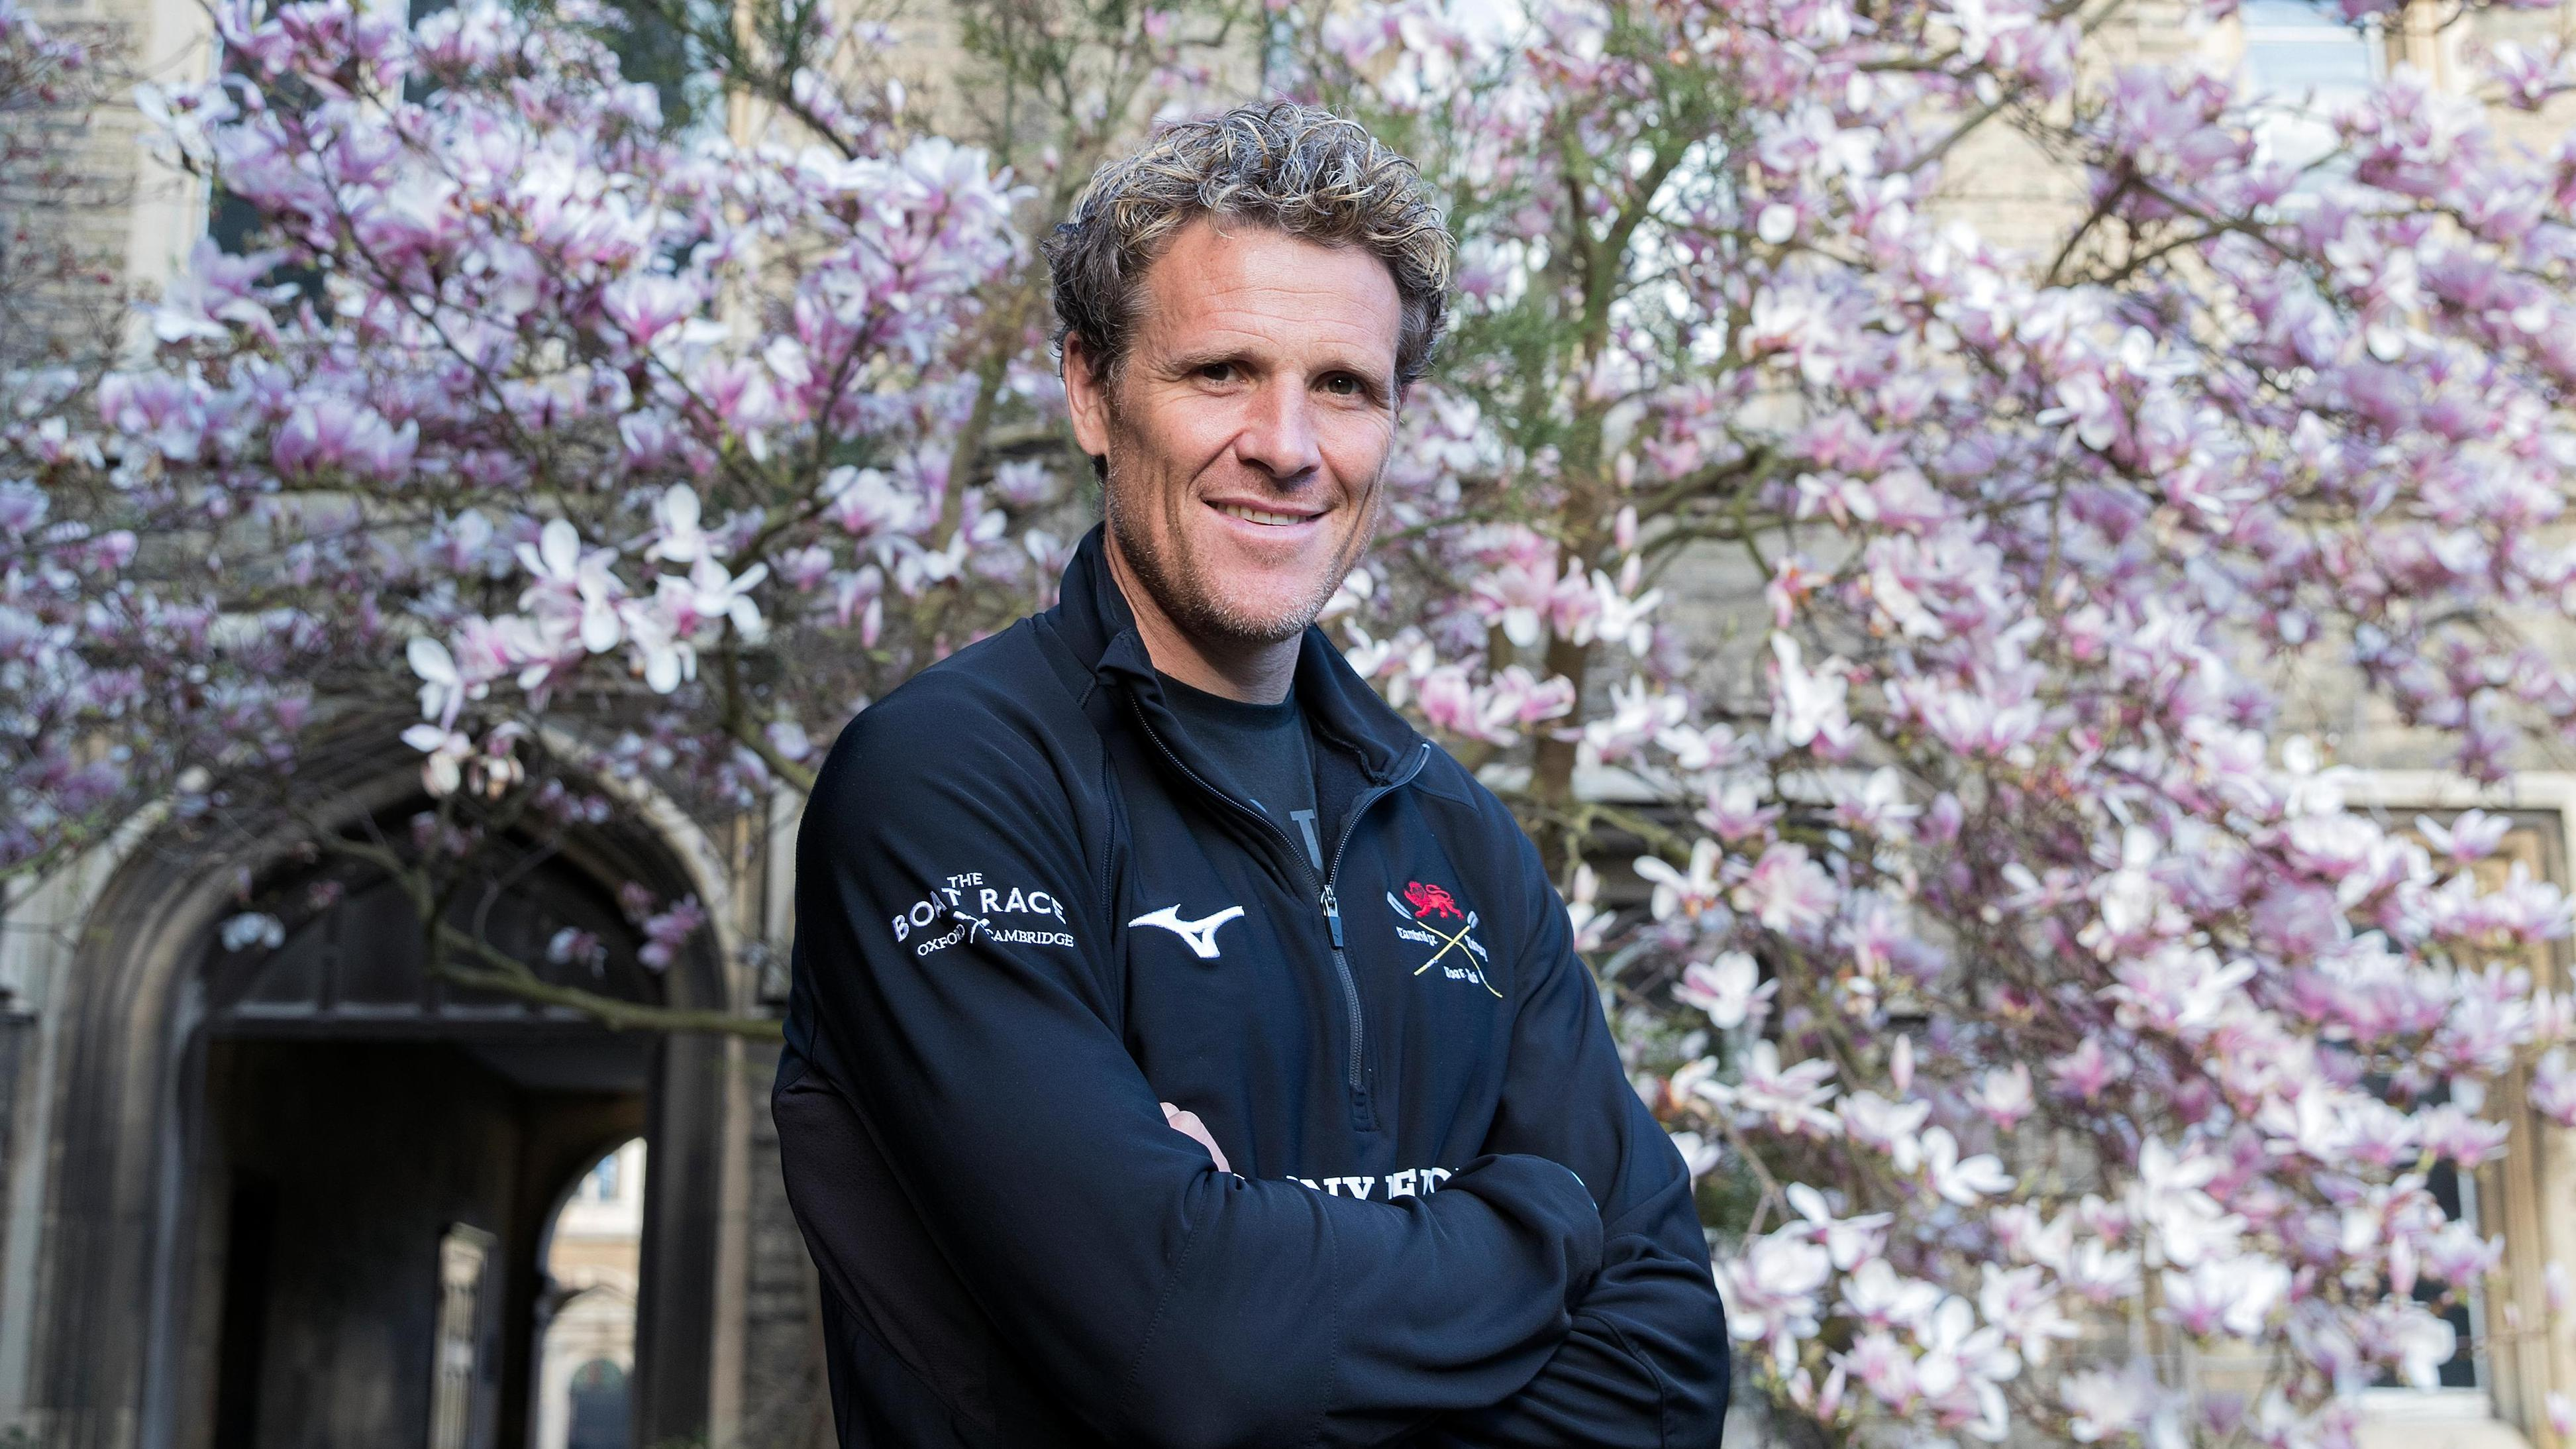 ?no Free Ride? For James Cracknell In Boat Race photo